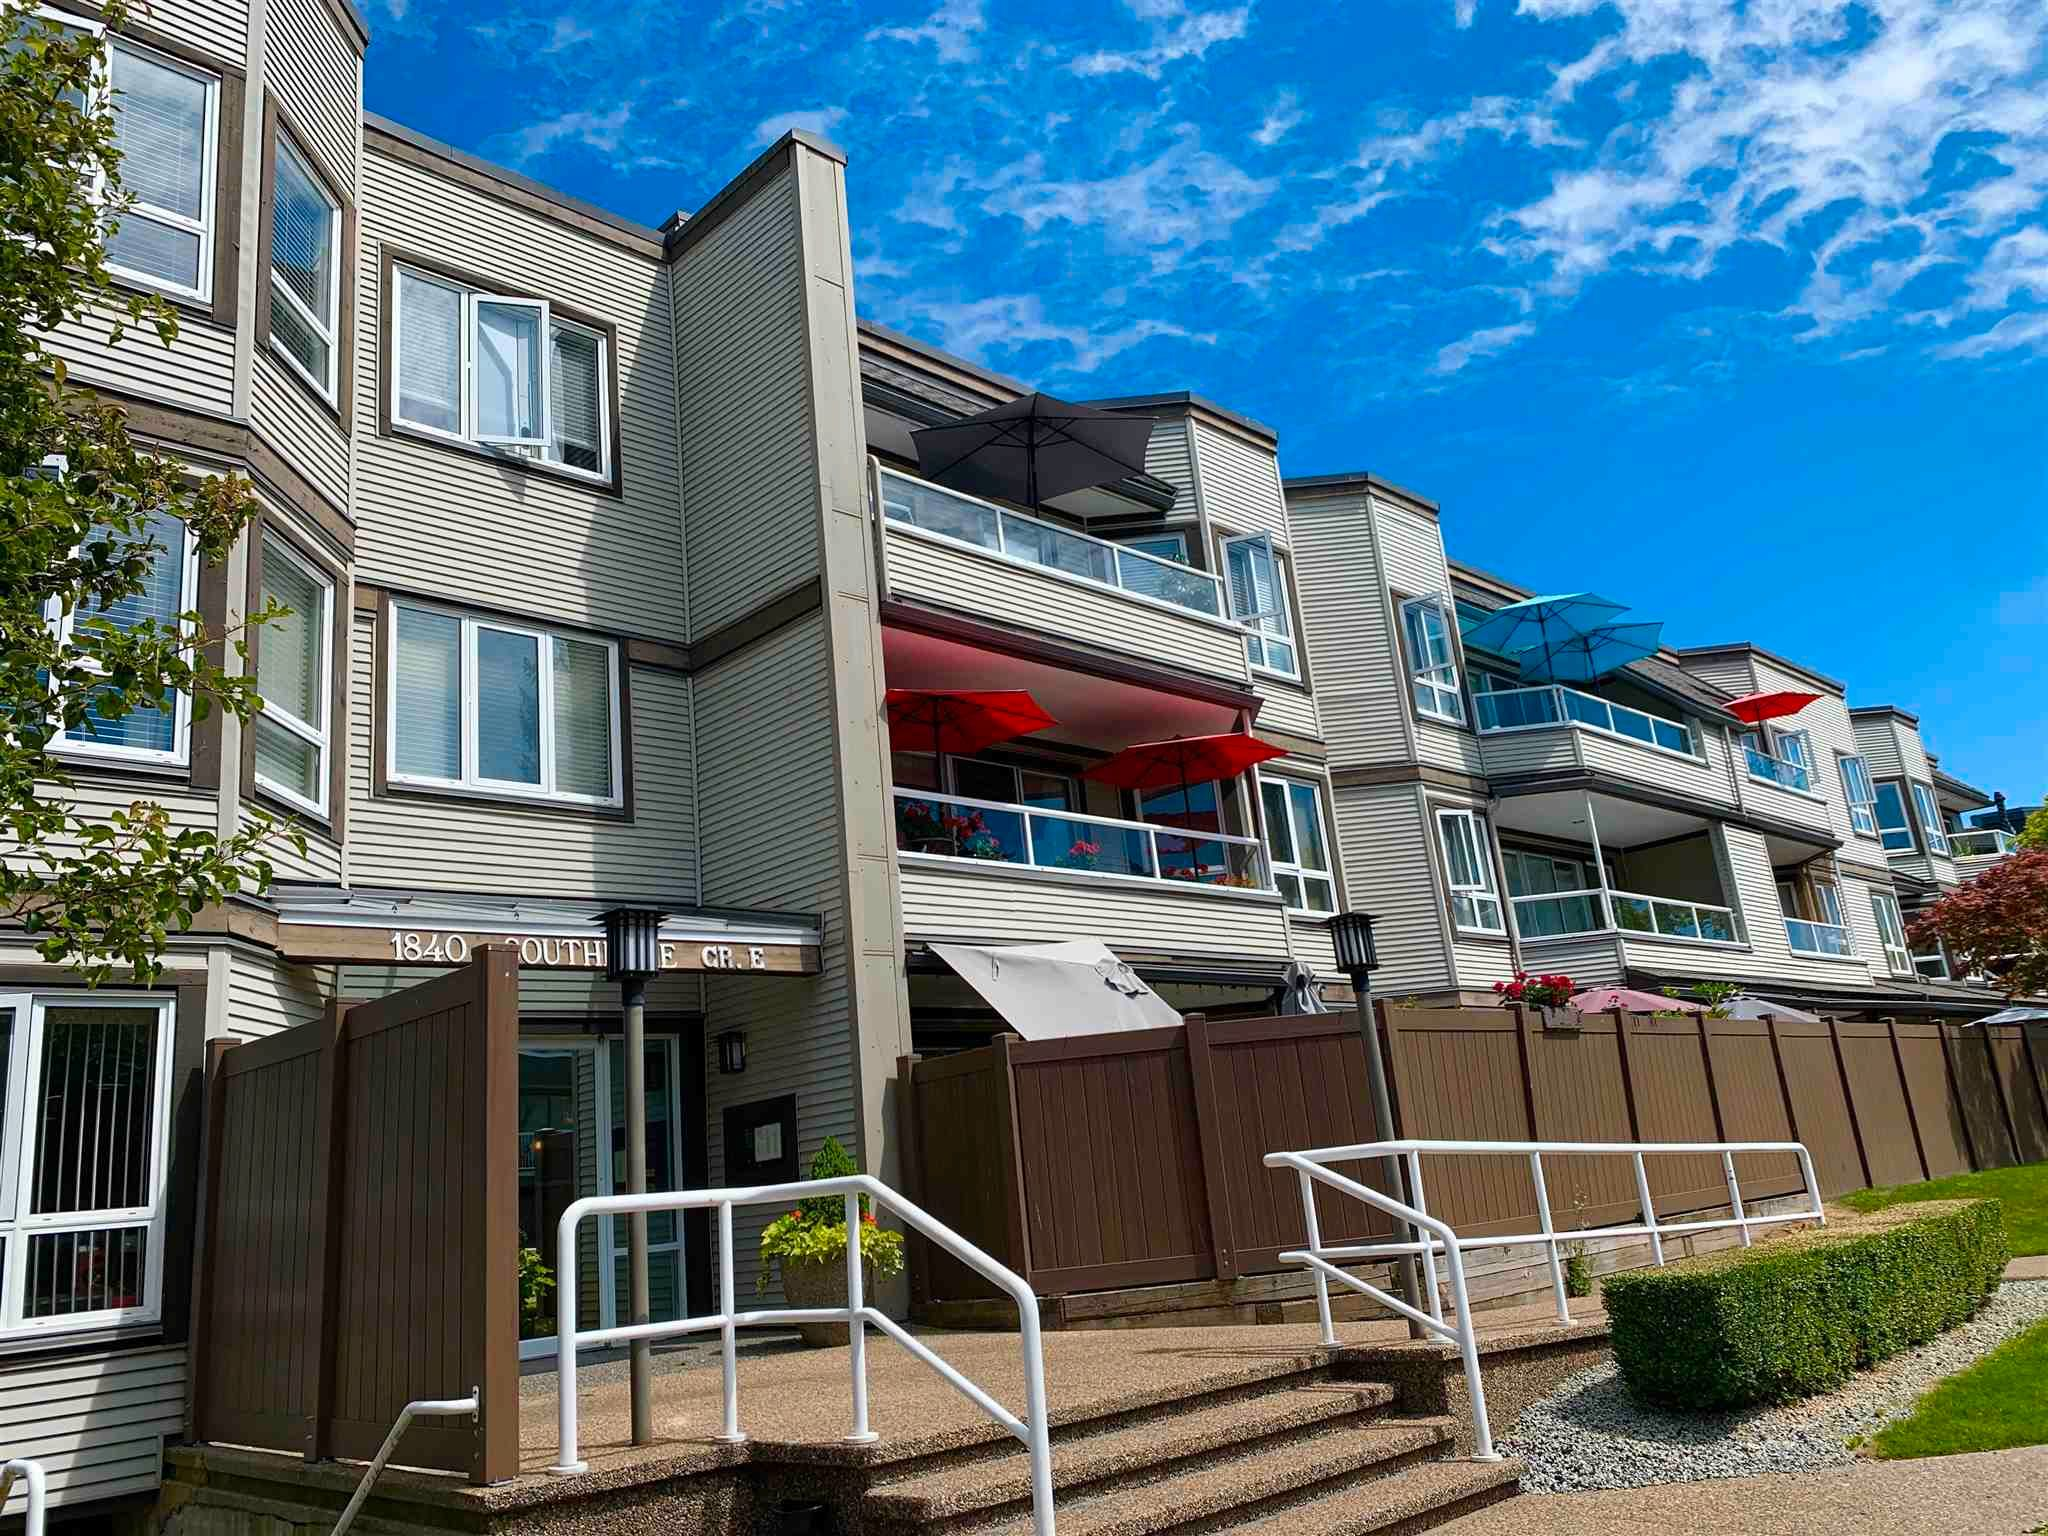 """Main Photo: 312 1840 E SOUTHMERE Crescent in Surrey: Sunnyside Park Surrey Condo for sale in """"Southmere Mews West"""" (South Surrey White Rock)  : MLS®# R2602062"""